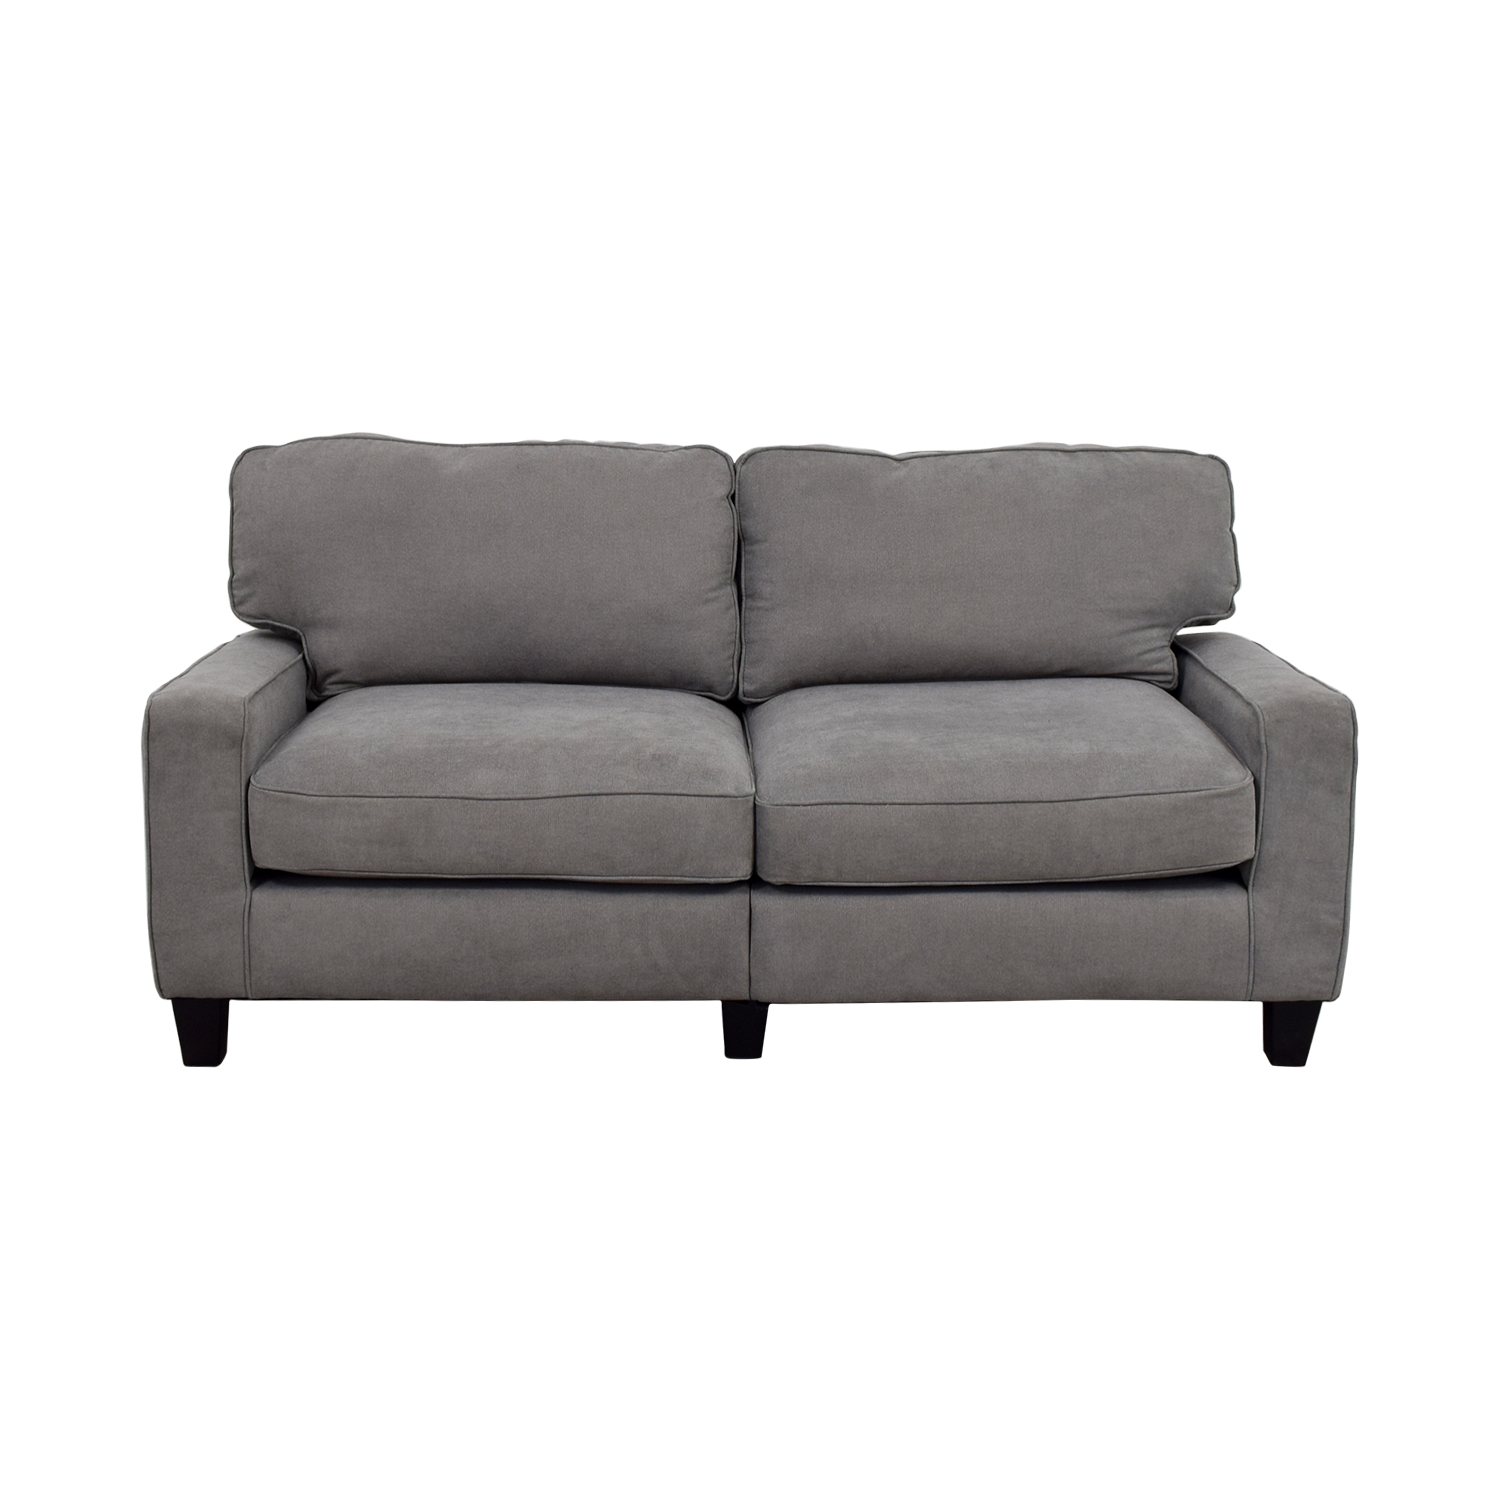 Serta Serta RTA Palisades Grey Sofa second hand